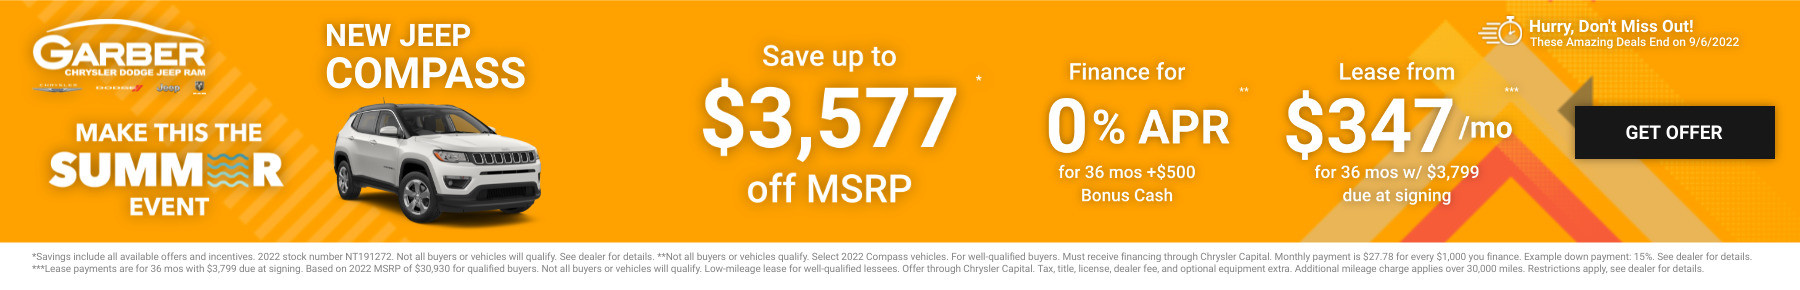 New Jeep Compass Current Deals and Offers in Saginaw, MI